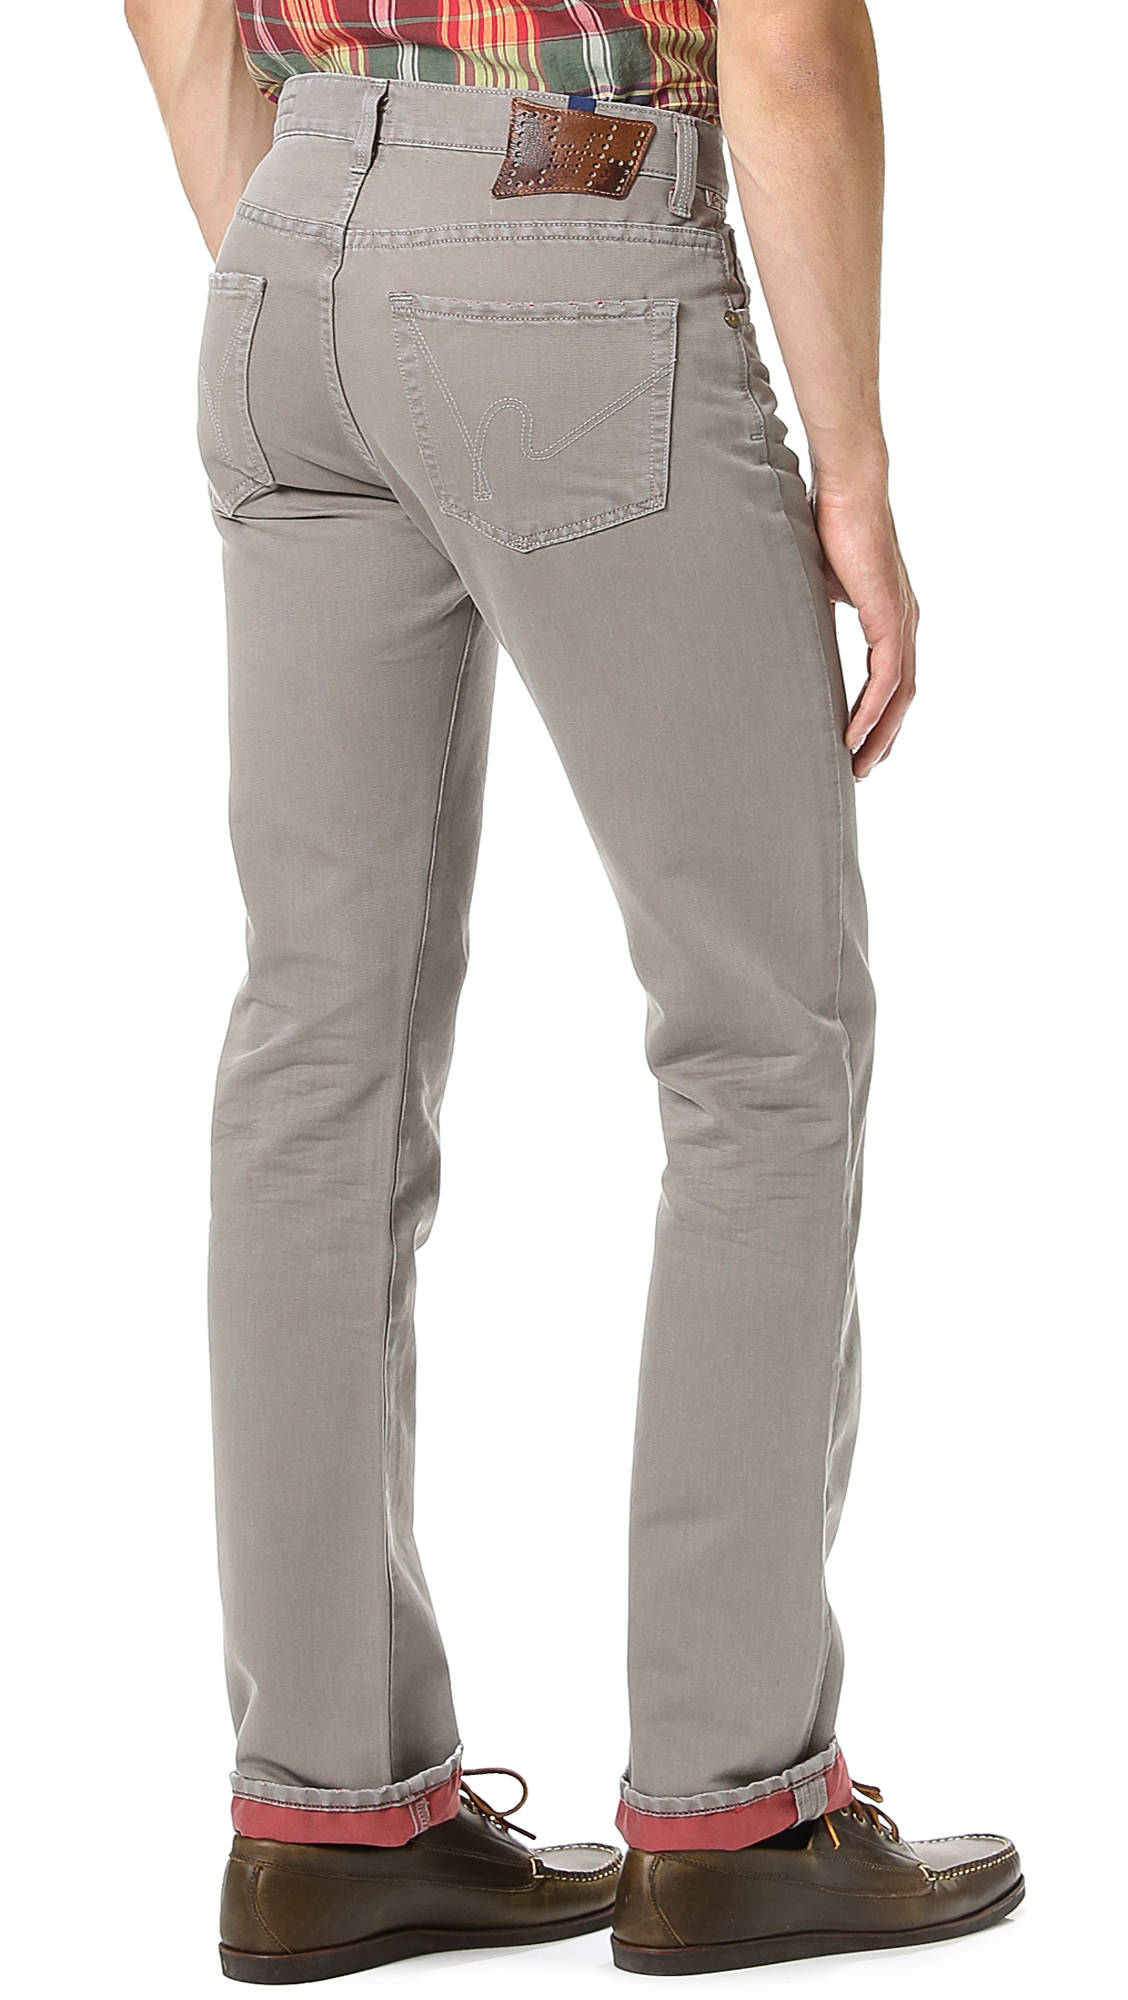 lyst citizens of humanity sid twill straight leg jeans in gray for men. Black Bedroom Furniture Sets. Home Design Ideas